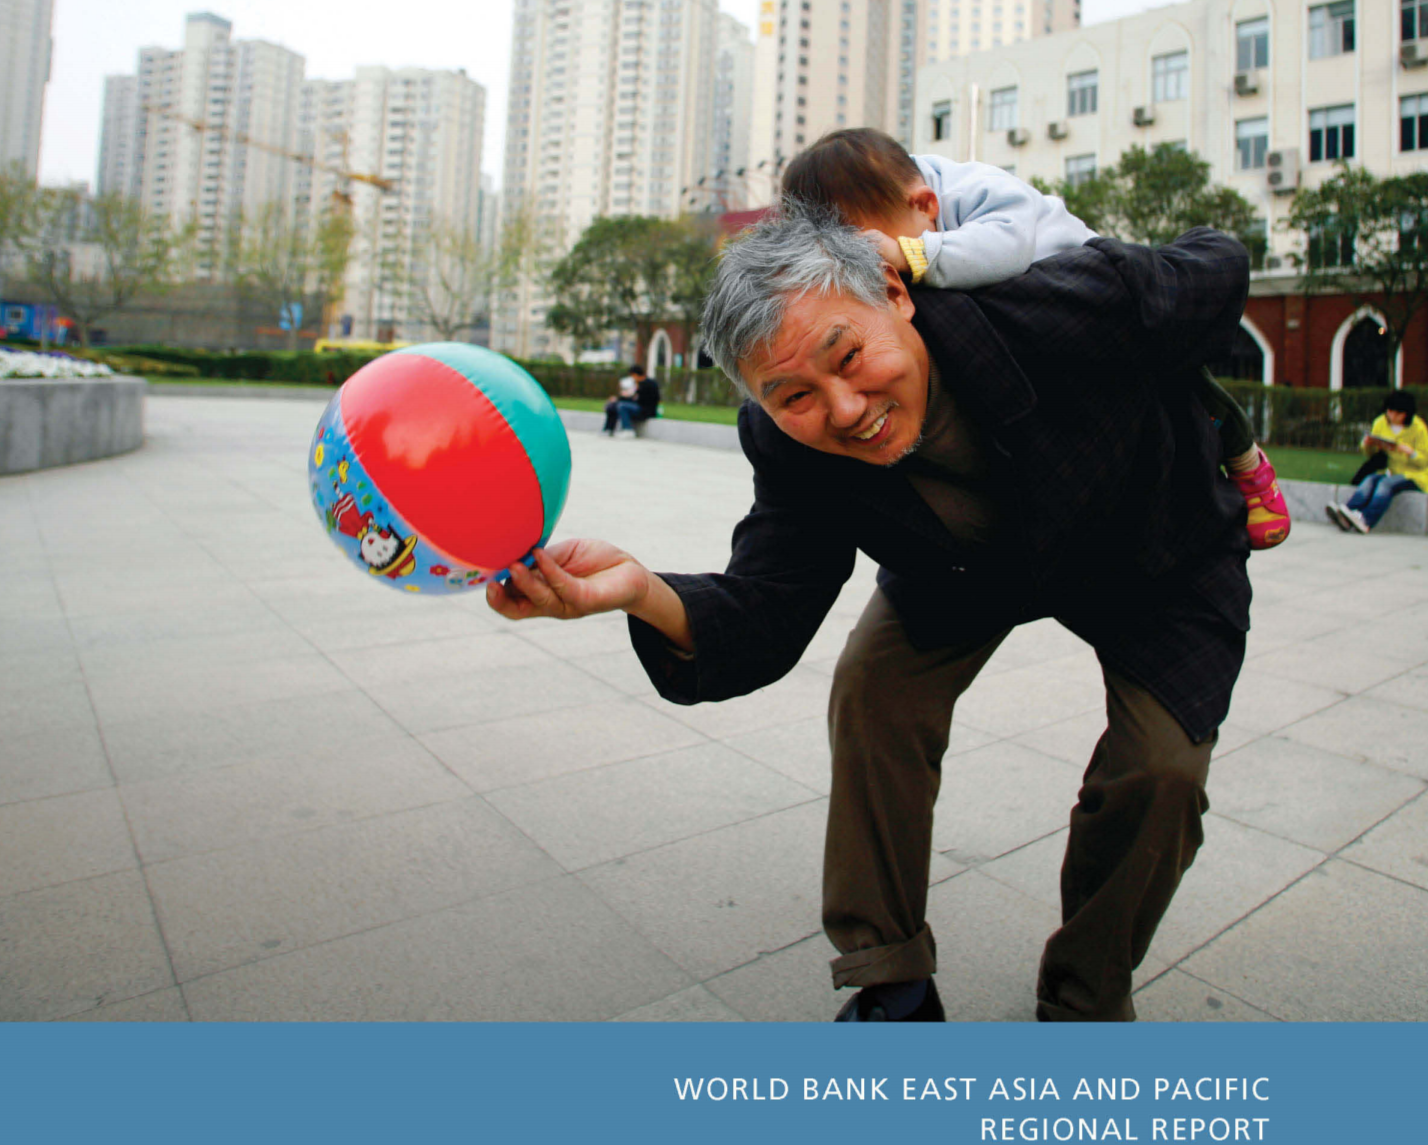 Rapid Aging in East Asia and Pacific Will Shrink Workforce and Increase Public Spending